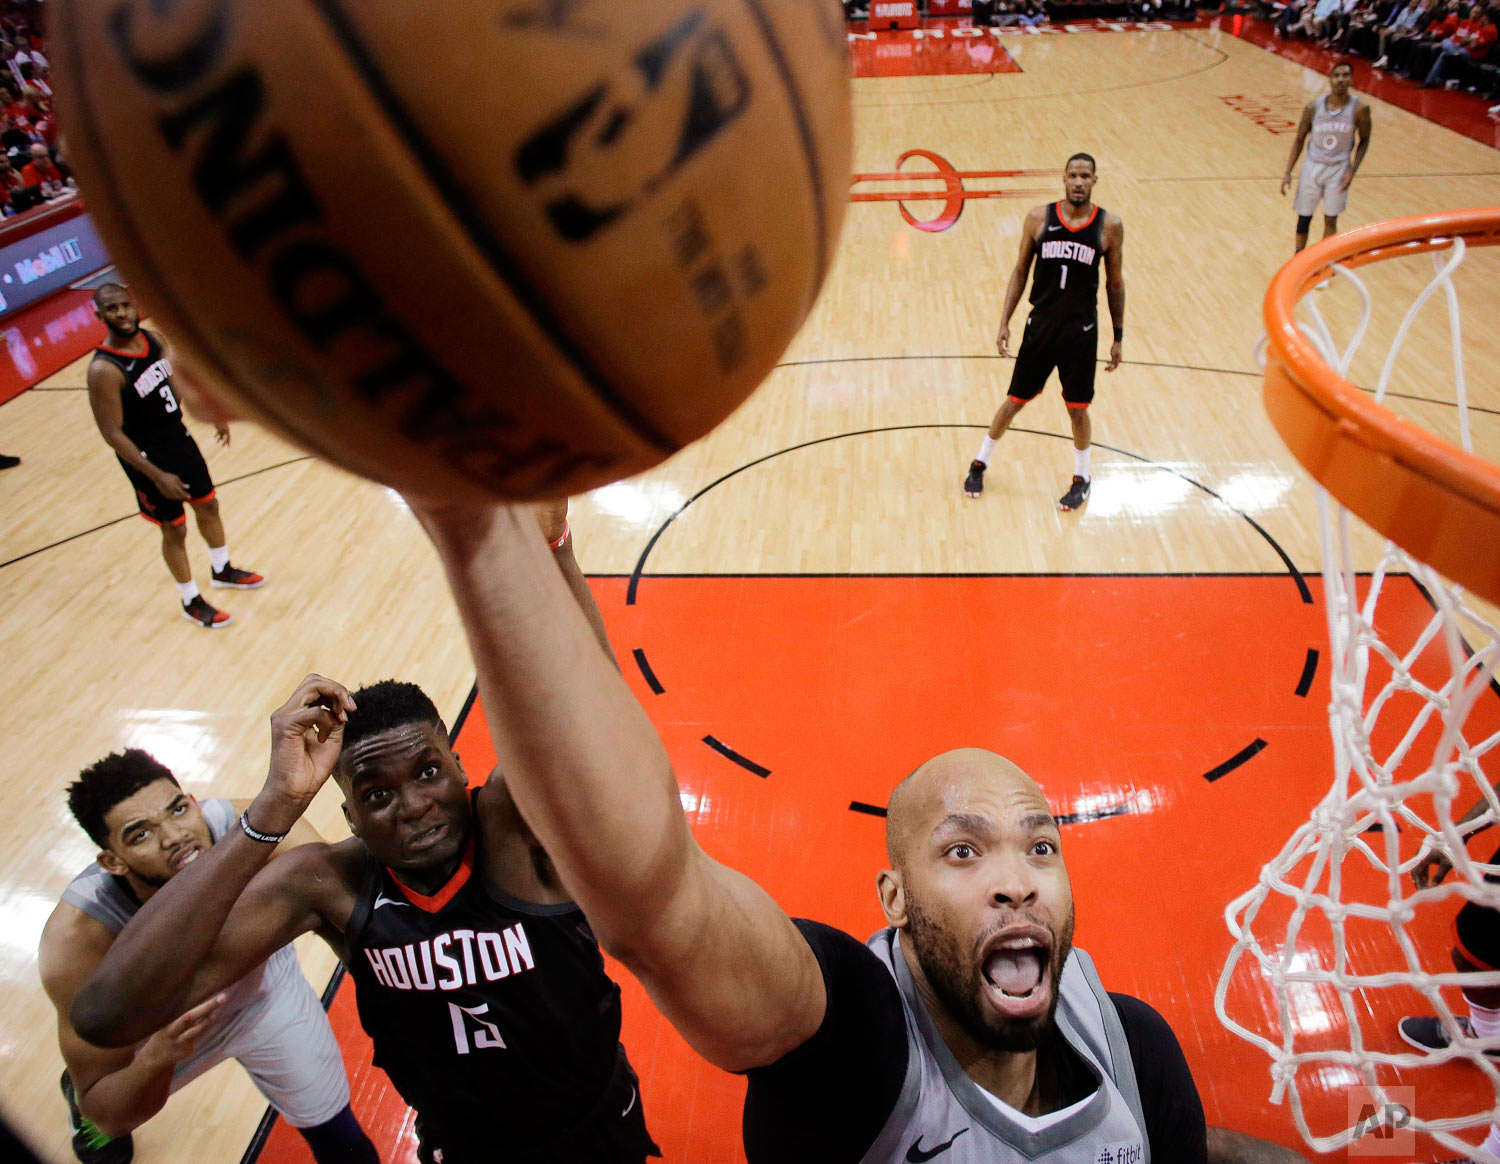 Minnesota Timberwolves forward Taj Gibson, right, shoots as Houston Rockets center Clint Capela (15) defends during the second half in Game 2 of a first-round NBA basketball playoff series, Wednesday, April 18, 2018, in Houston. (AP Photo/Eric Christian Smith)